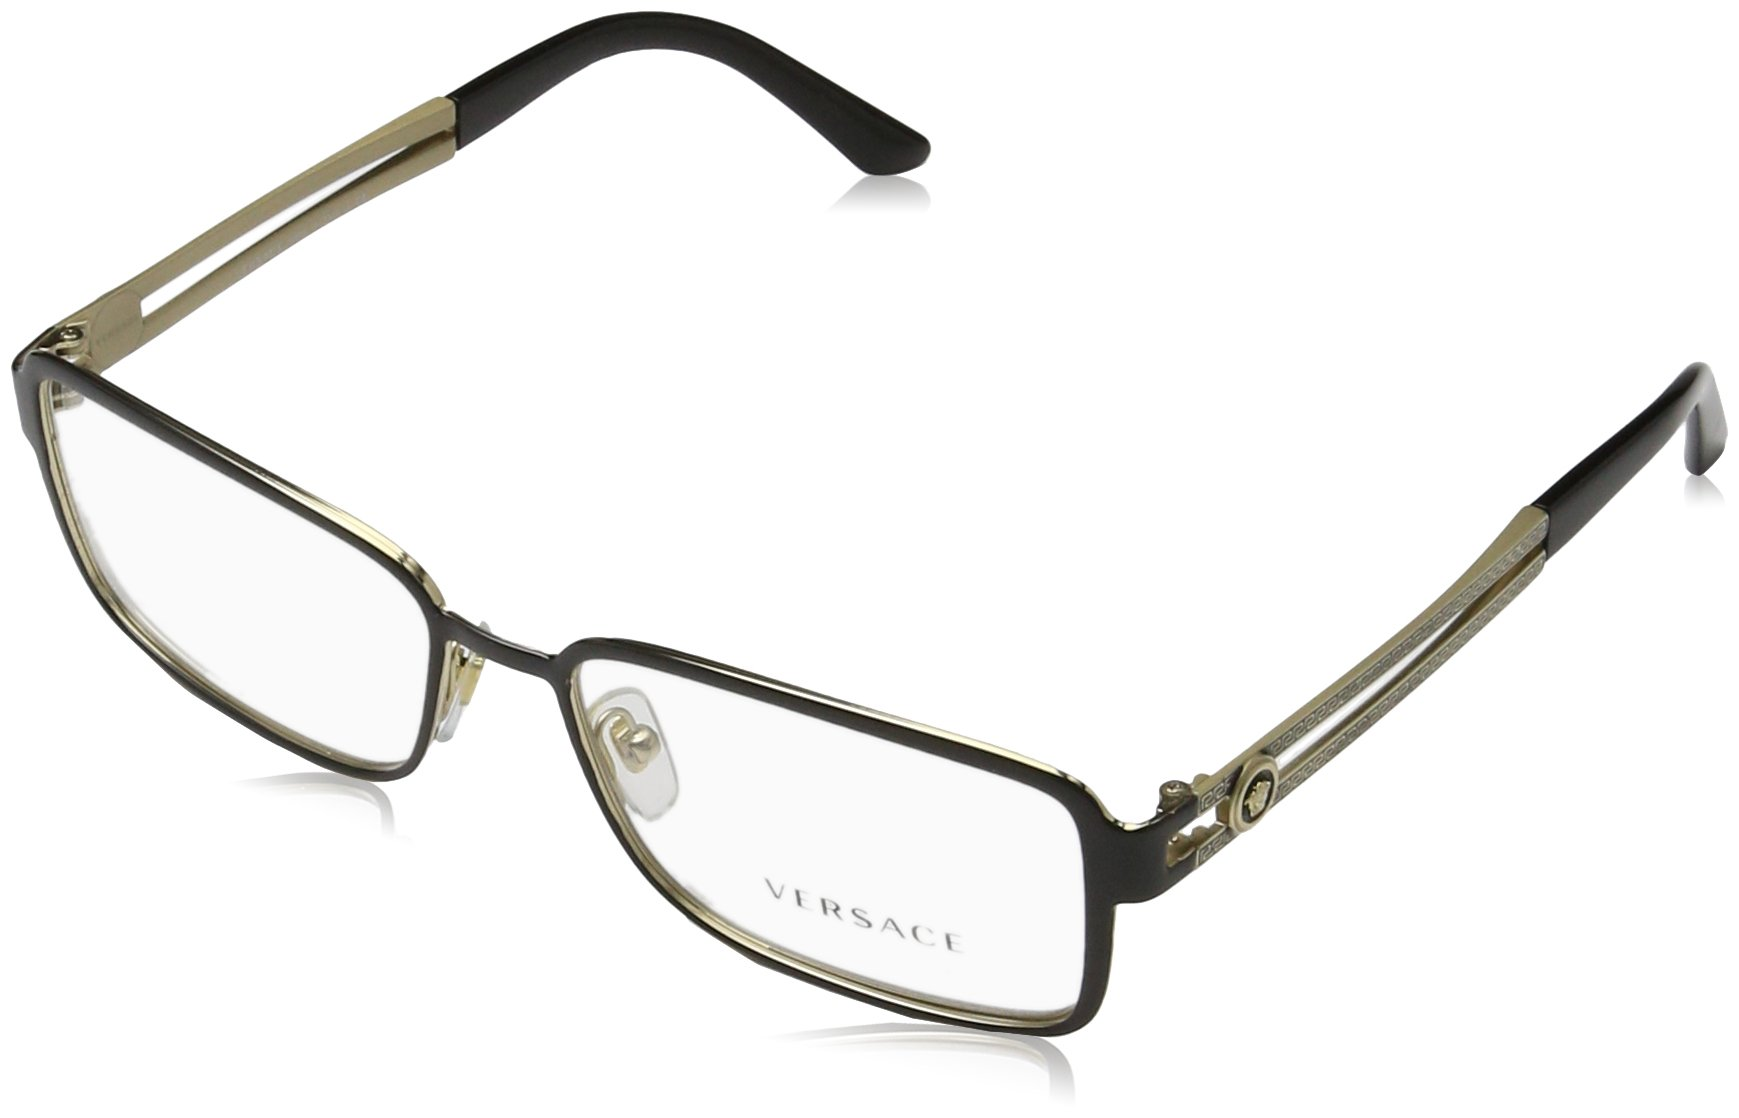 Versace VE1236 Eyeglass Frames 1371-55 - Black/pale Gold VE1236-1371-55 by Versace